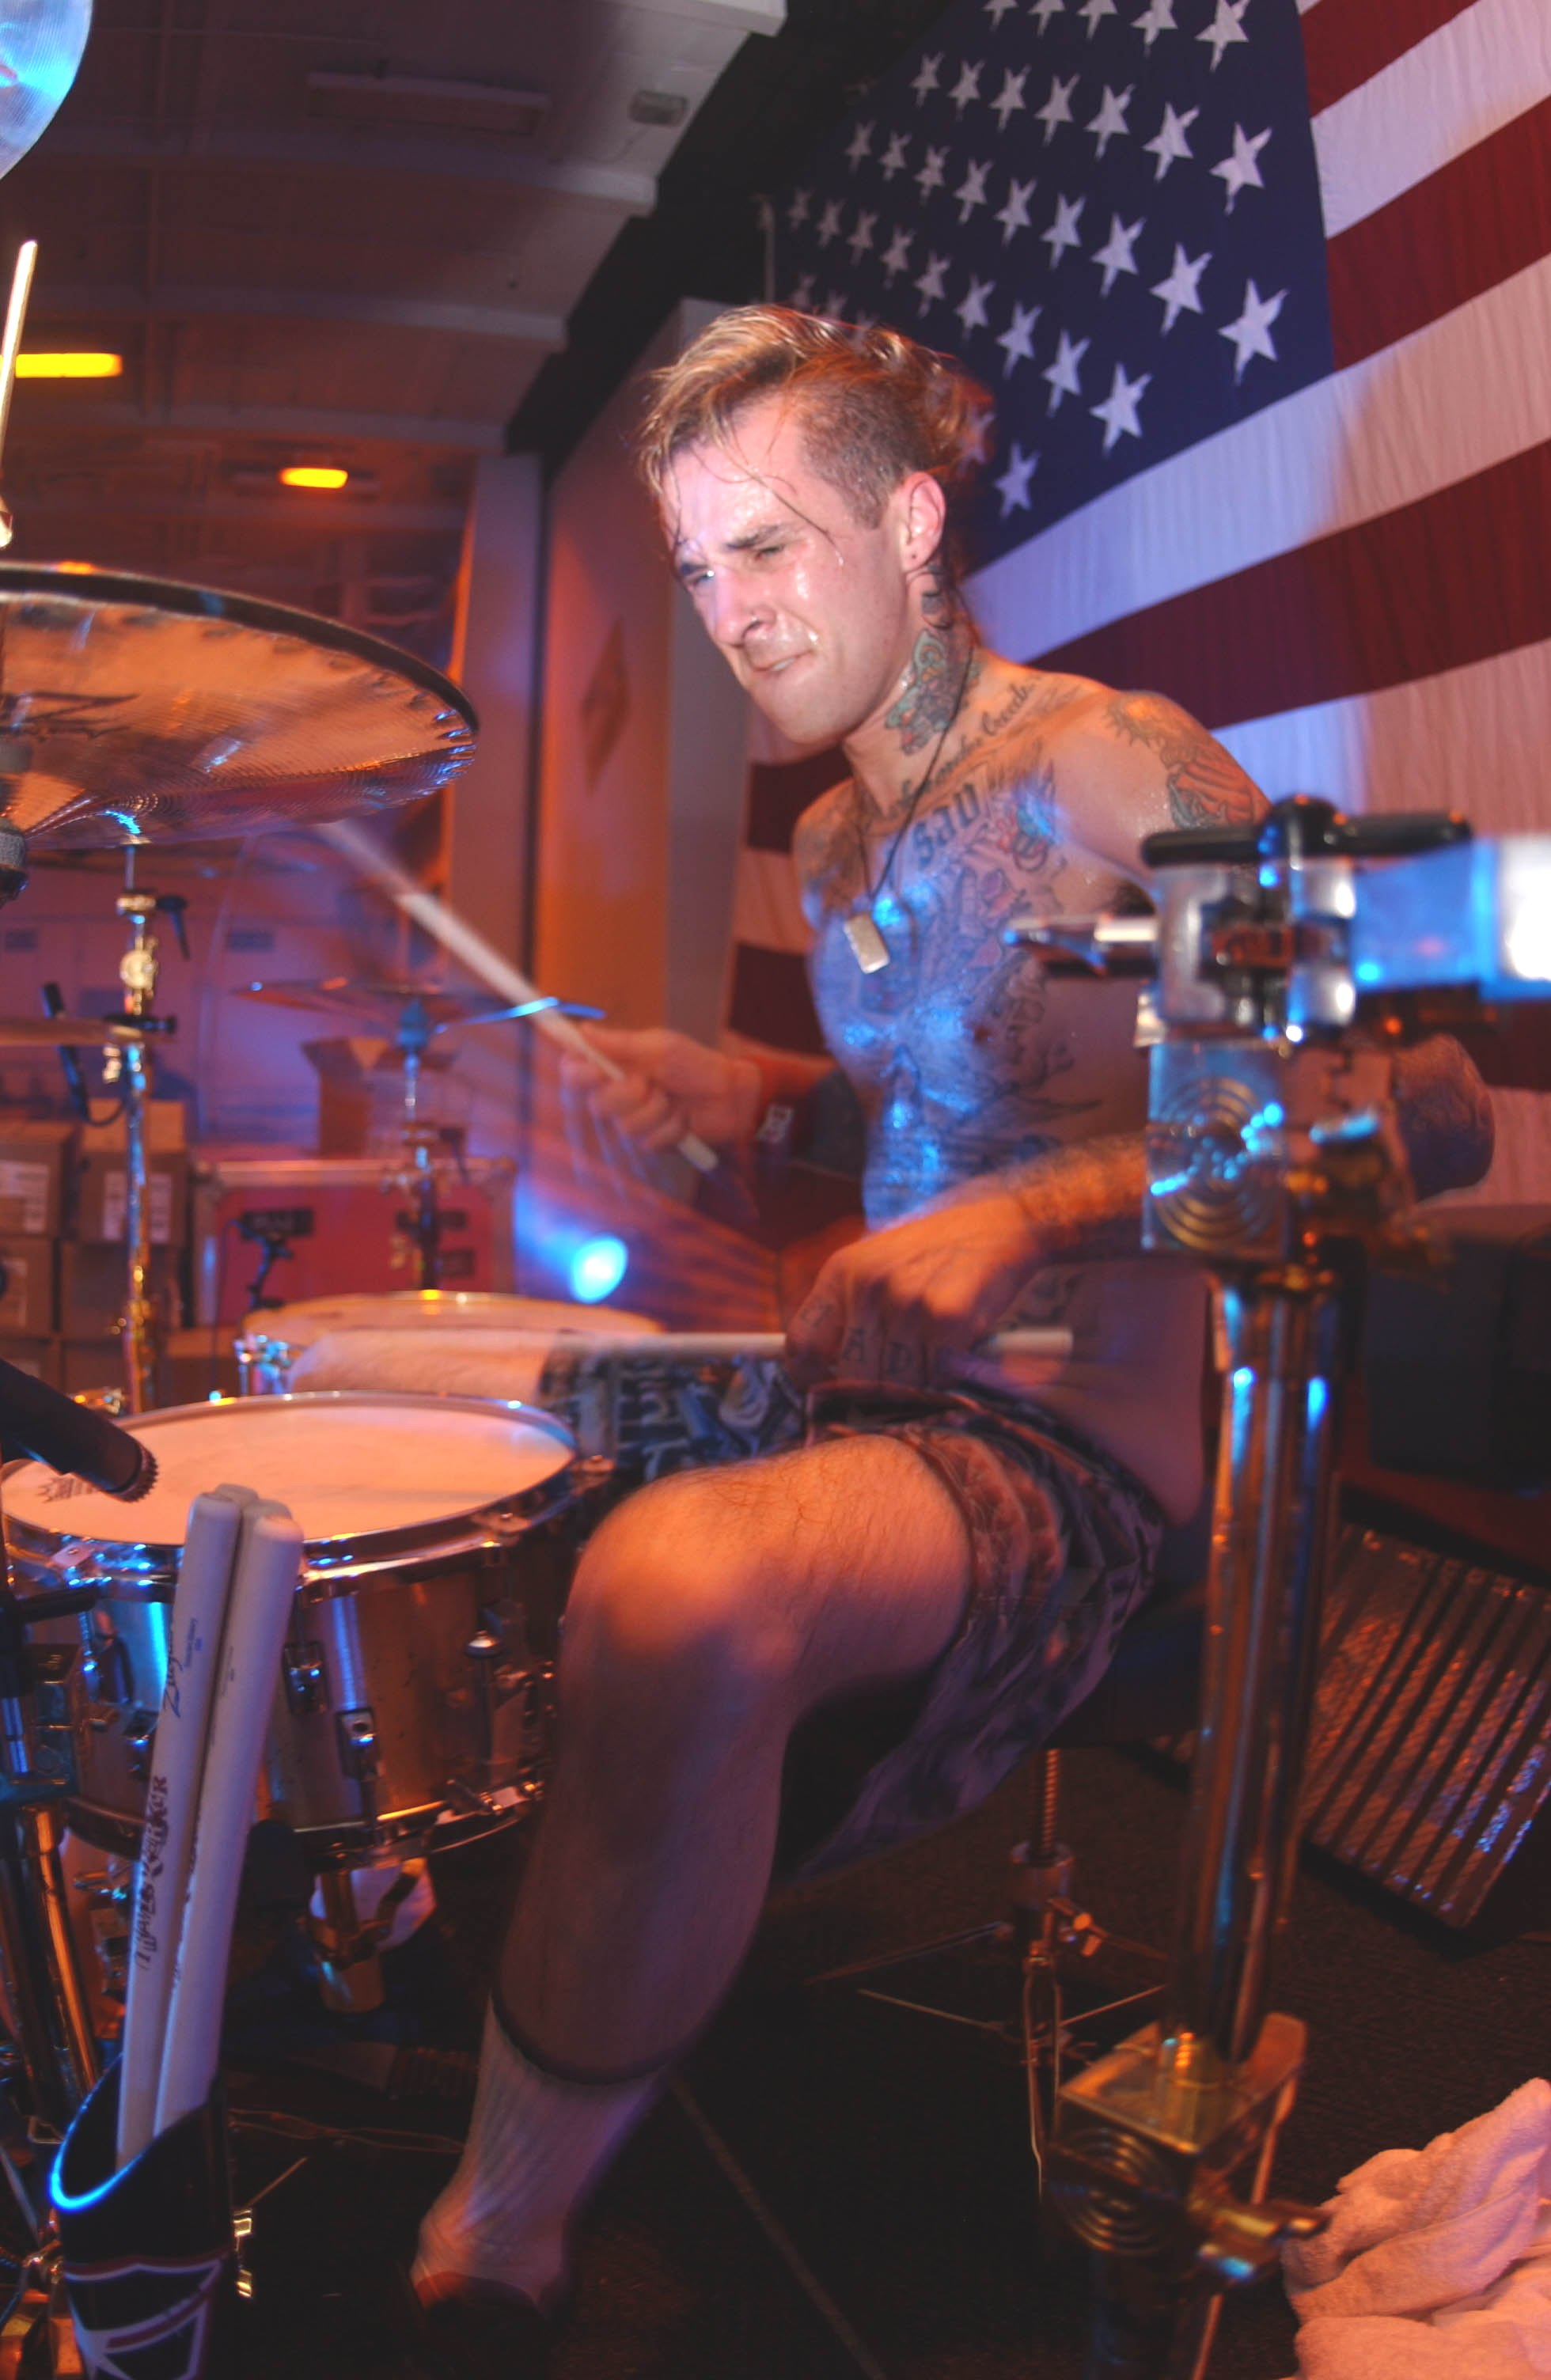 Travis Barker - Wikipedia 0402feb4685a